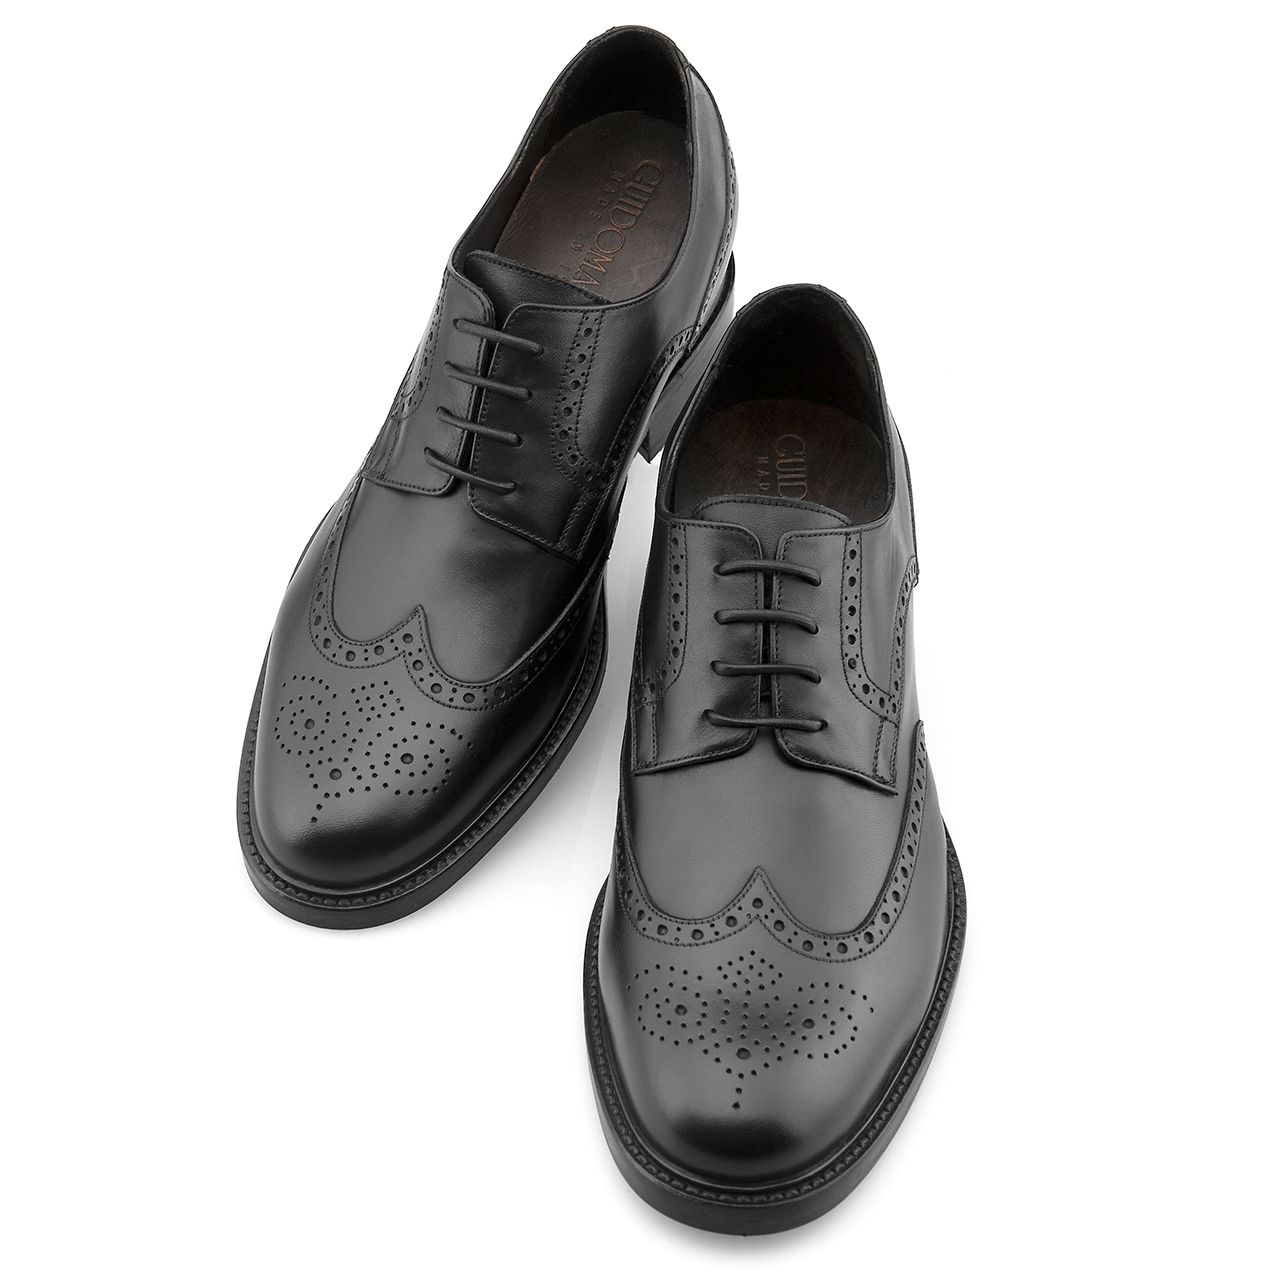 GuidoMaggi provides handmade luxury Italian Elevator Shoes for men. Our  designer Height Increasing Shoes will increase your height with a hidden  insert. 7646ae10c3b